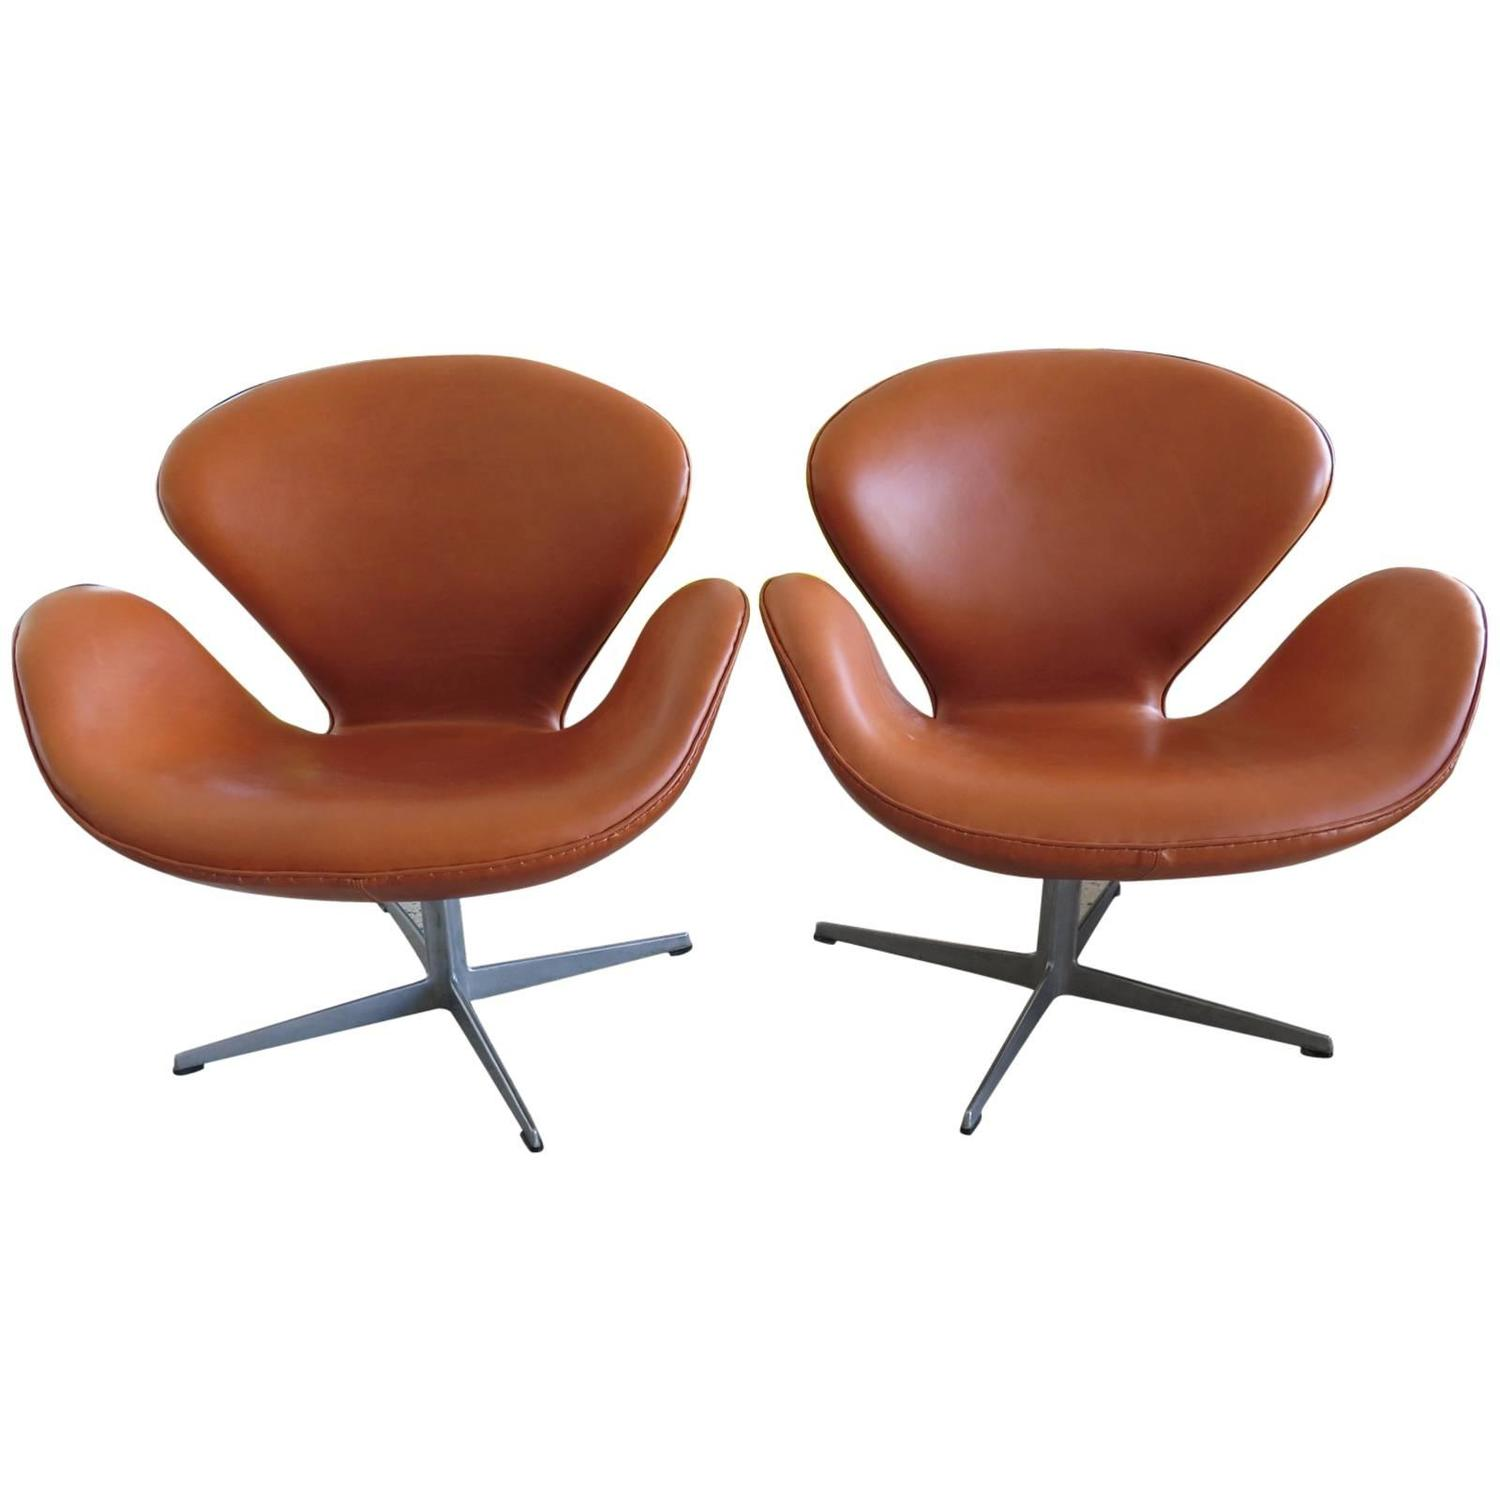 This arne jacobsen swan chair in cognac leather by fritz hansen is no - Pair Of Vintage Arne Jacobsen Fritz Hansen Swan Chairs